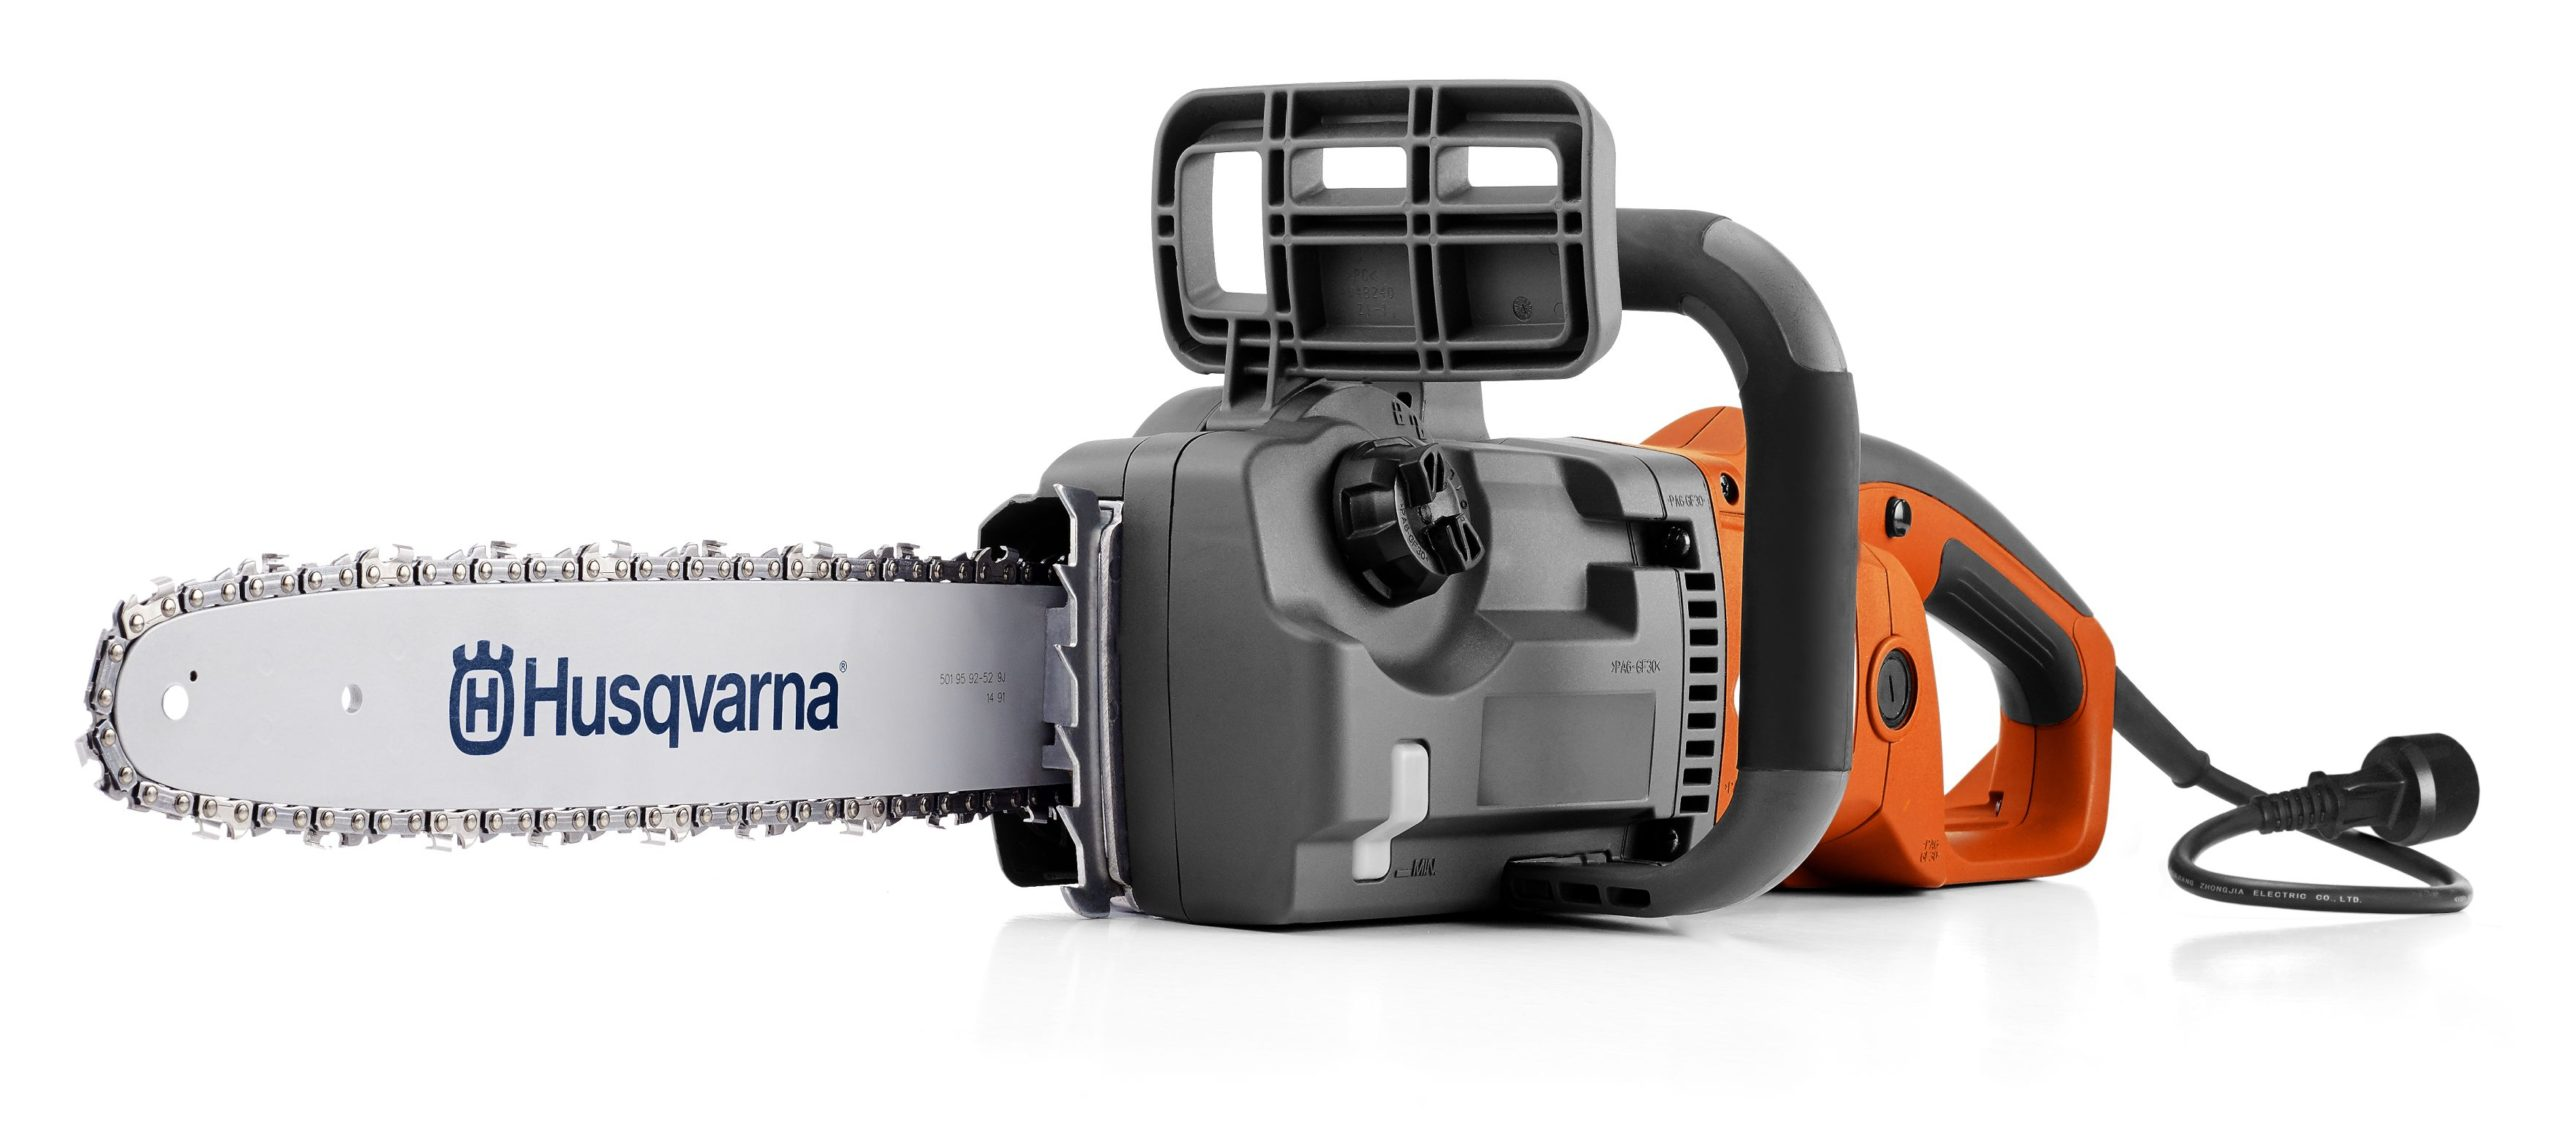 HUSQVARNA ELECTRIC CHAINSAW Image